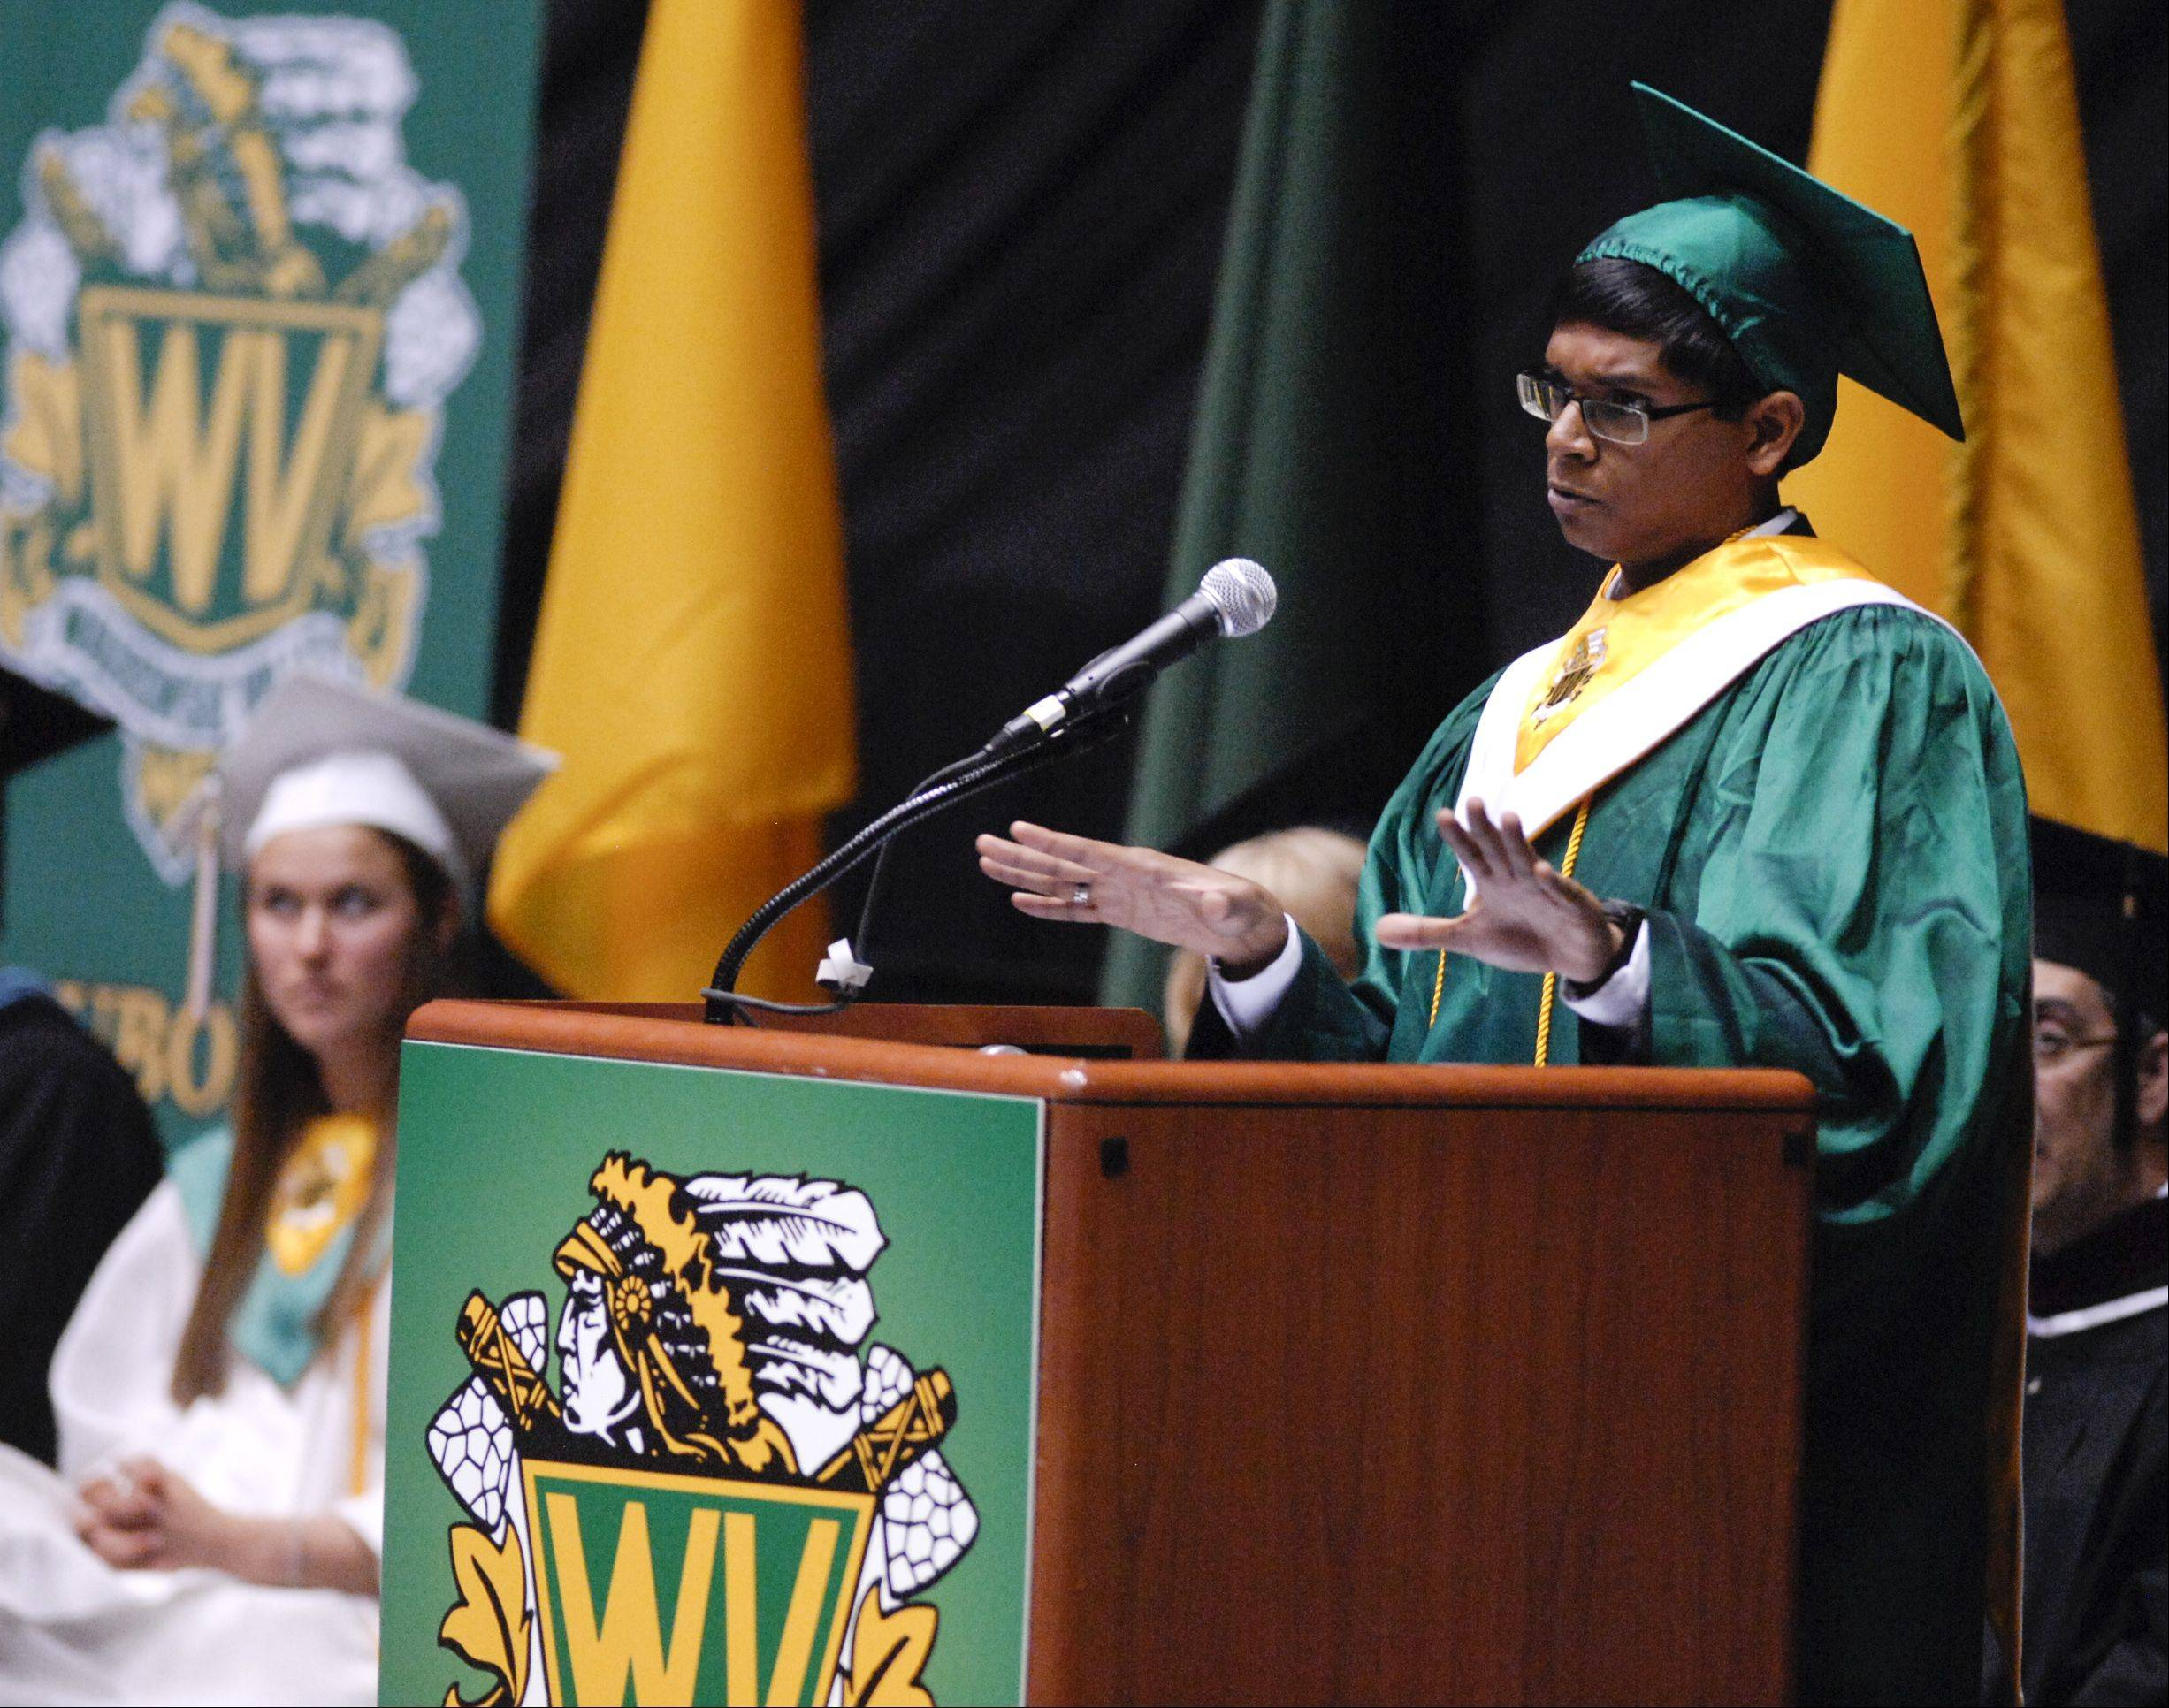 Aneesh Asokan gives the Senior Reflection Address the Waubonsie Valley High School graduation on Sunday, May 26 at the NIU Convocation Center in DeKalb.